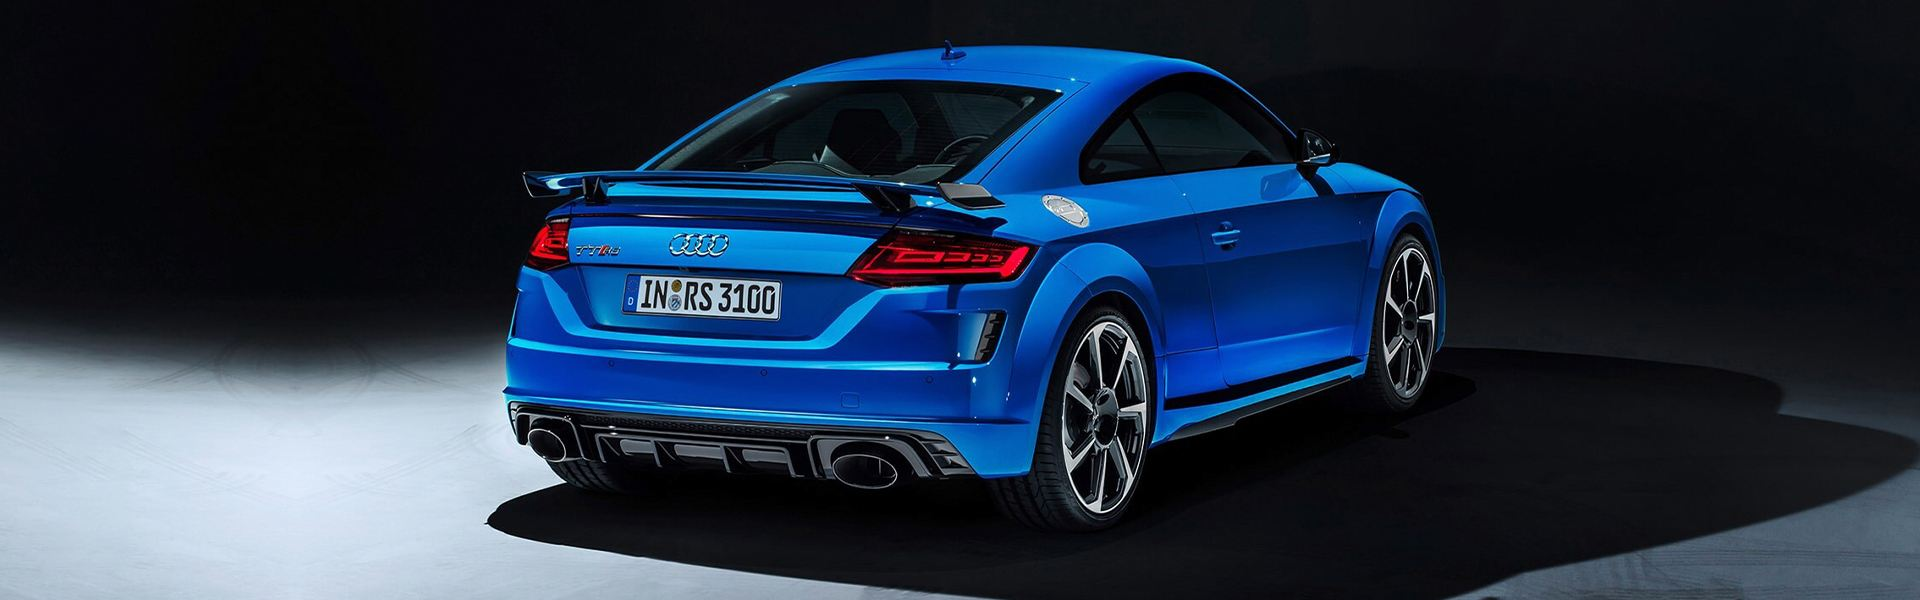 2021 RS 3 Lifestyle Image